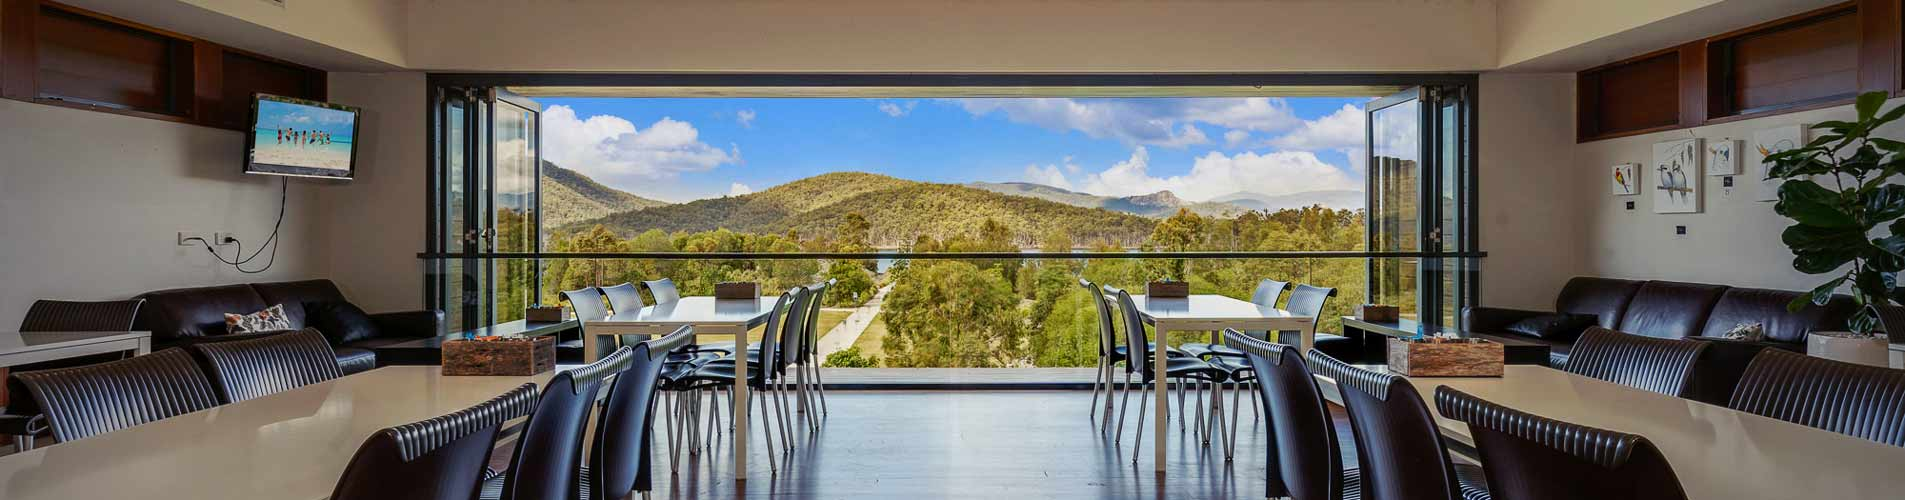 Function room with an amazing view